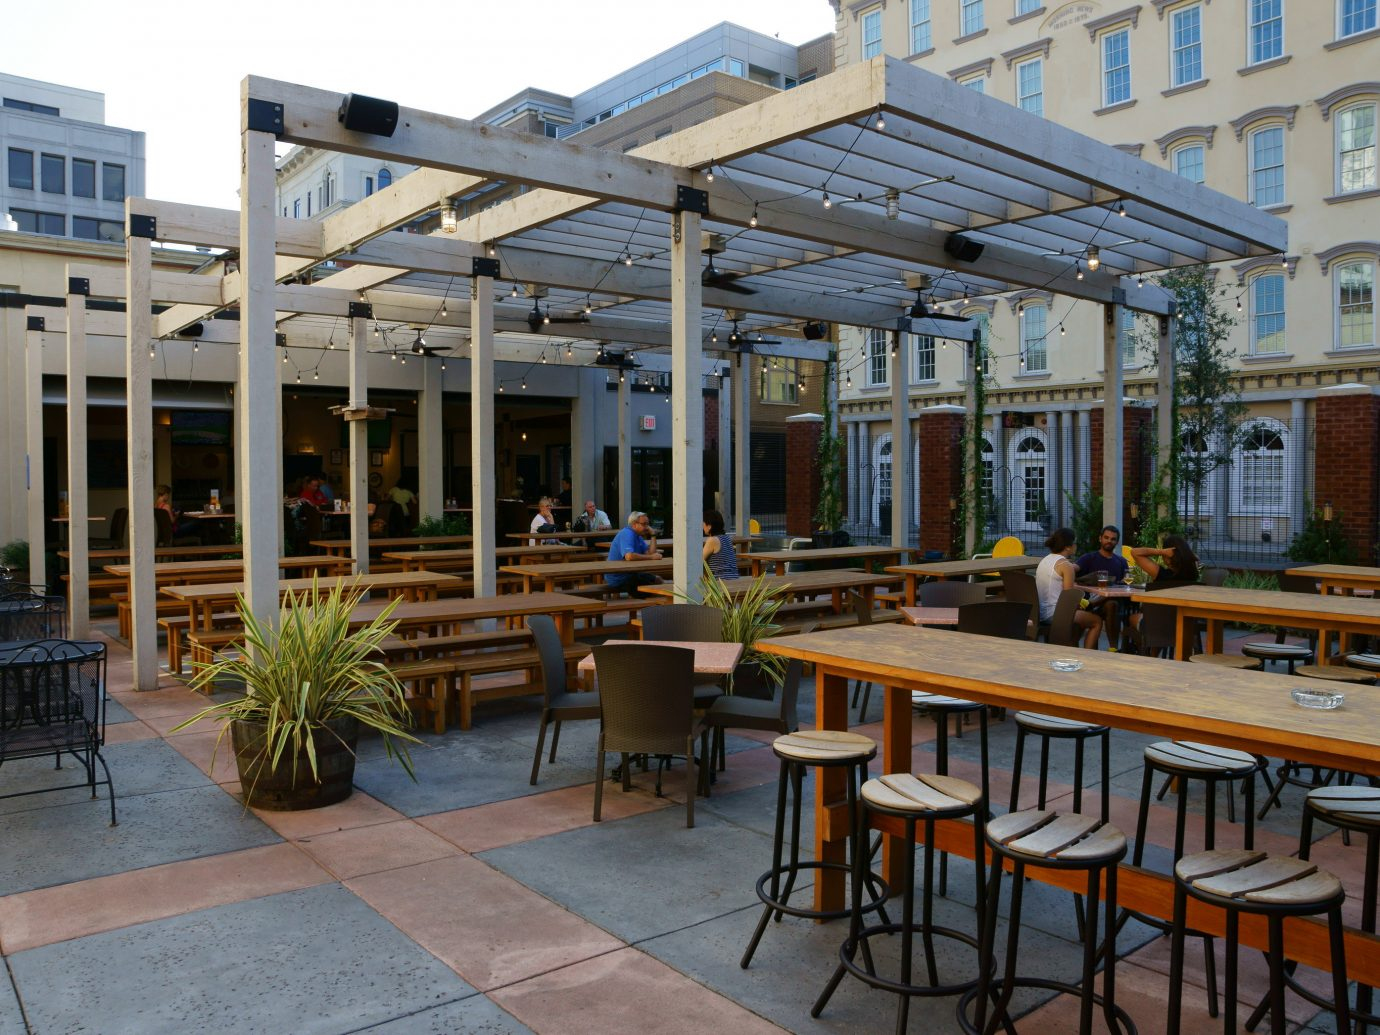 Boutique Hotels Food + Drink Girls Getaways Weekend Getaways building chair outdoor mixed use Patio outdoor structure canopy roof pergola café table Courtyard